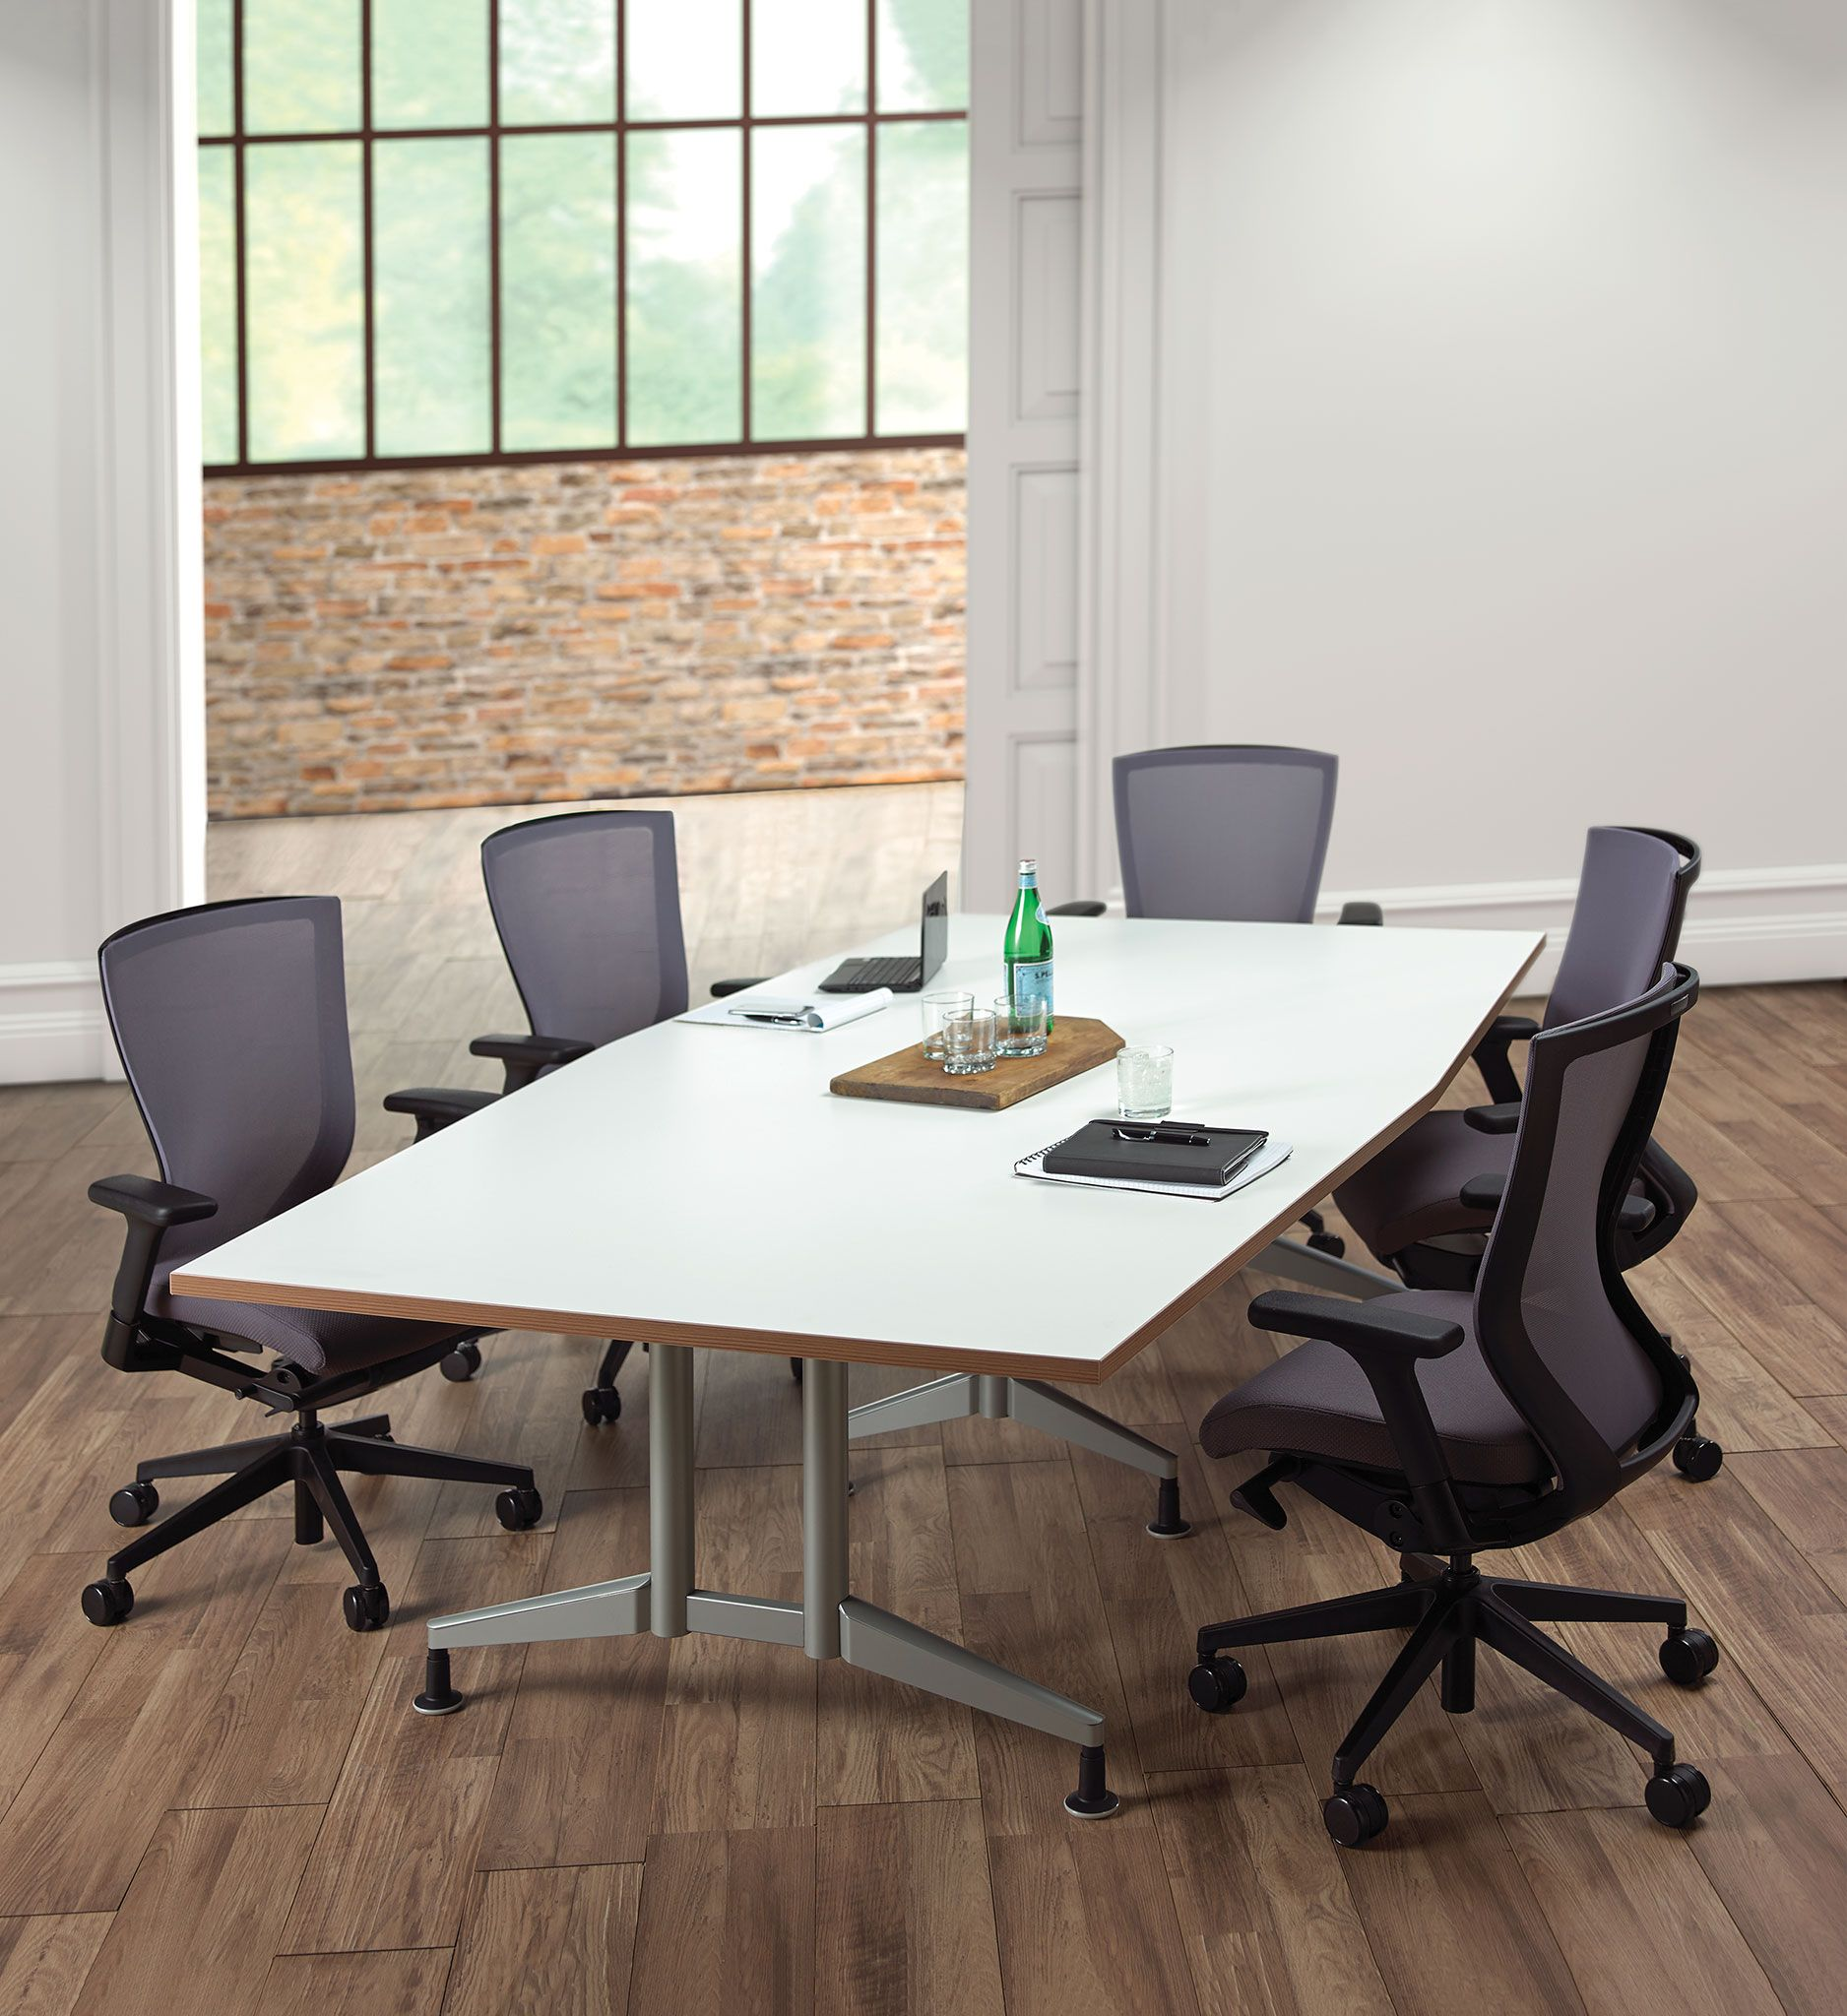 New Pirouette Double TT Base Conference Table Pirouette - Conference table shapes